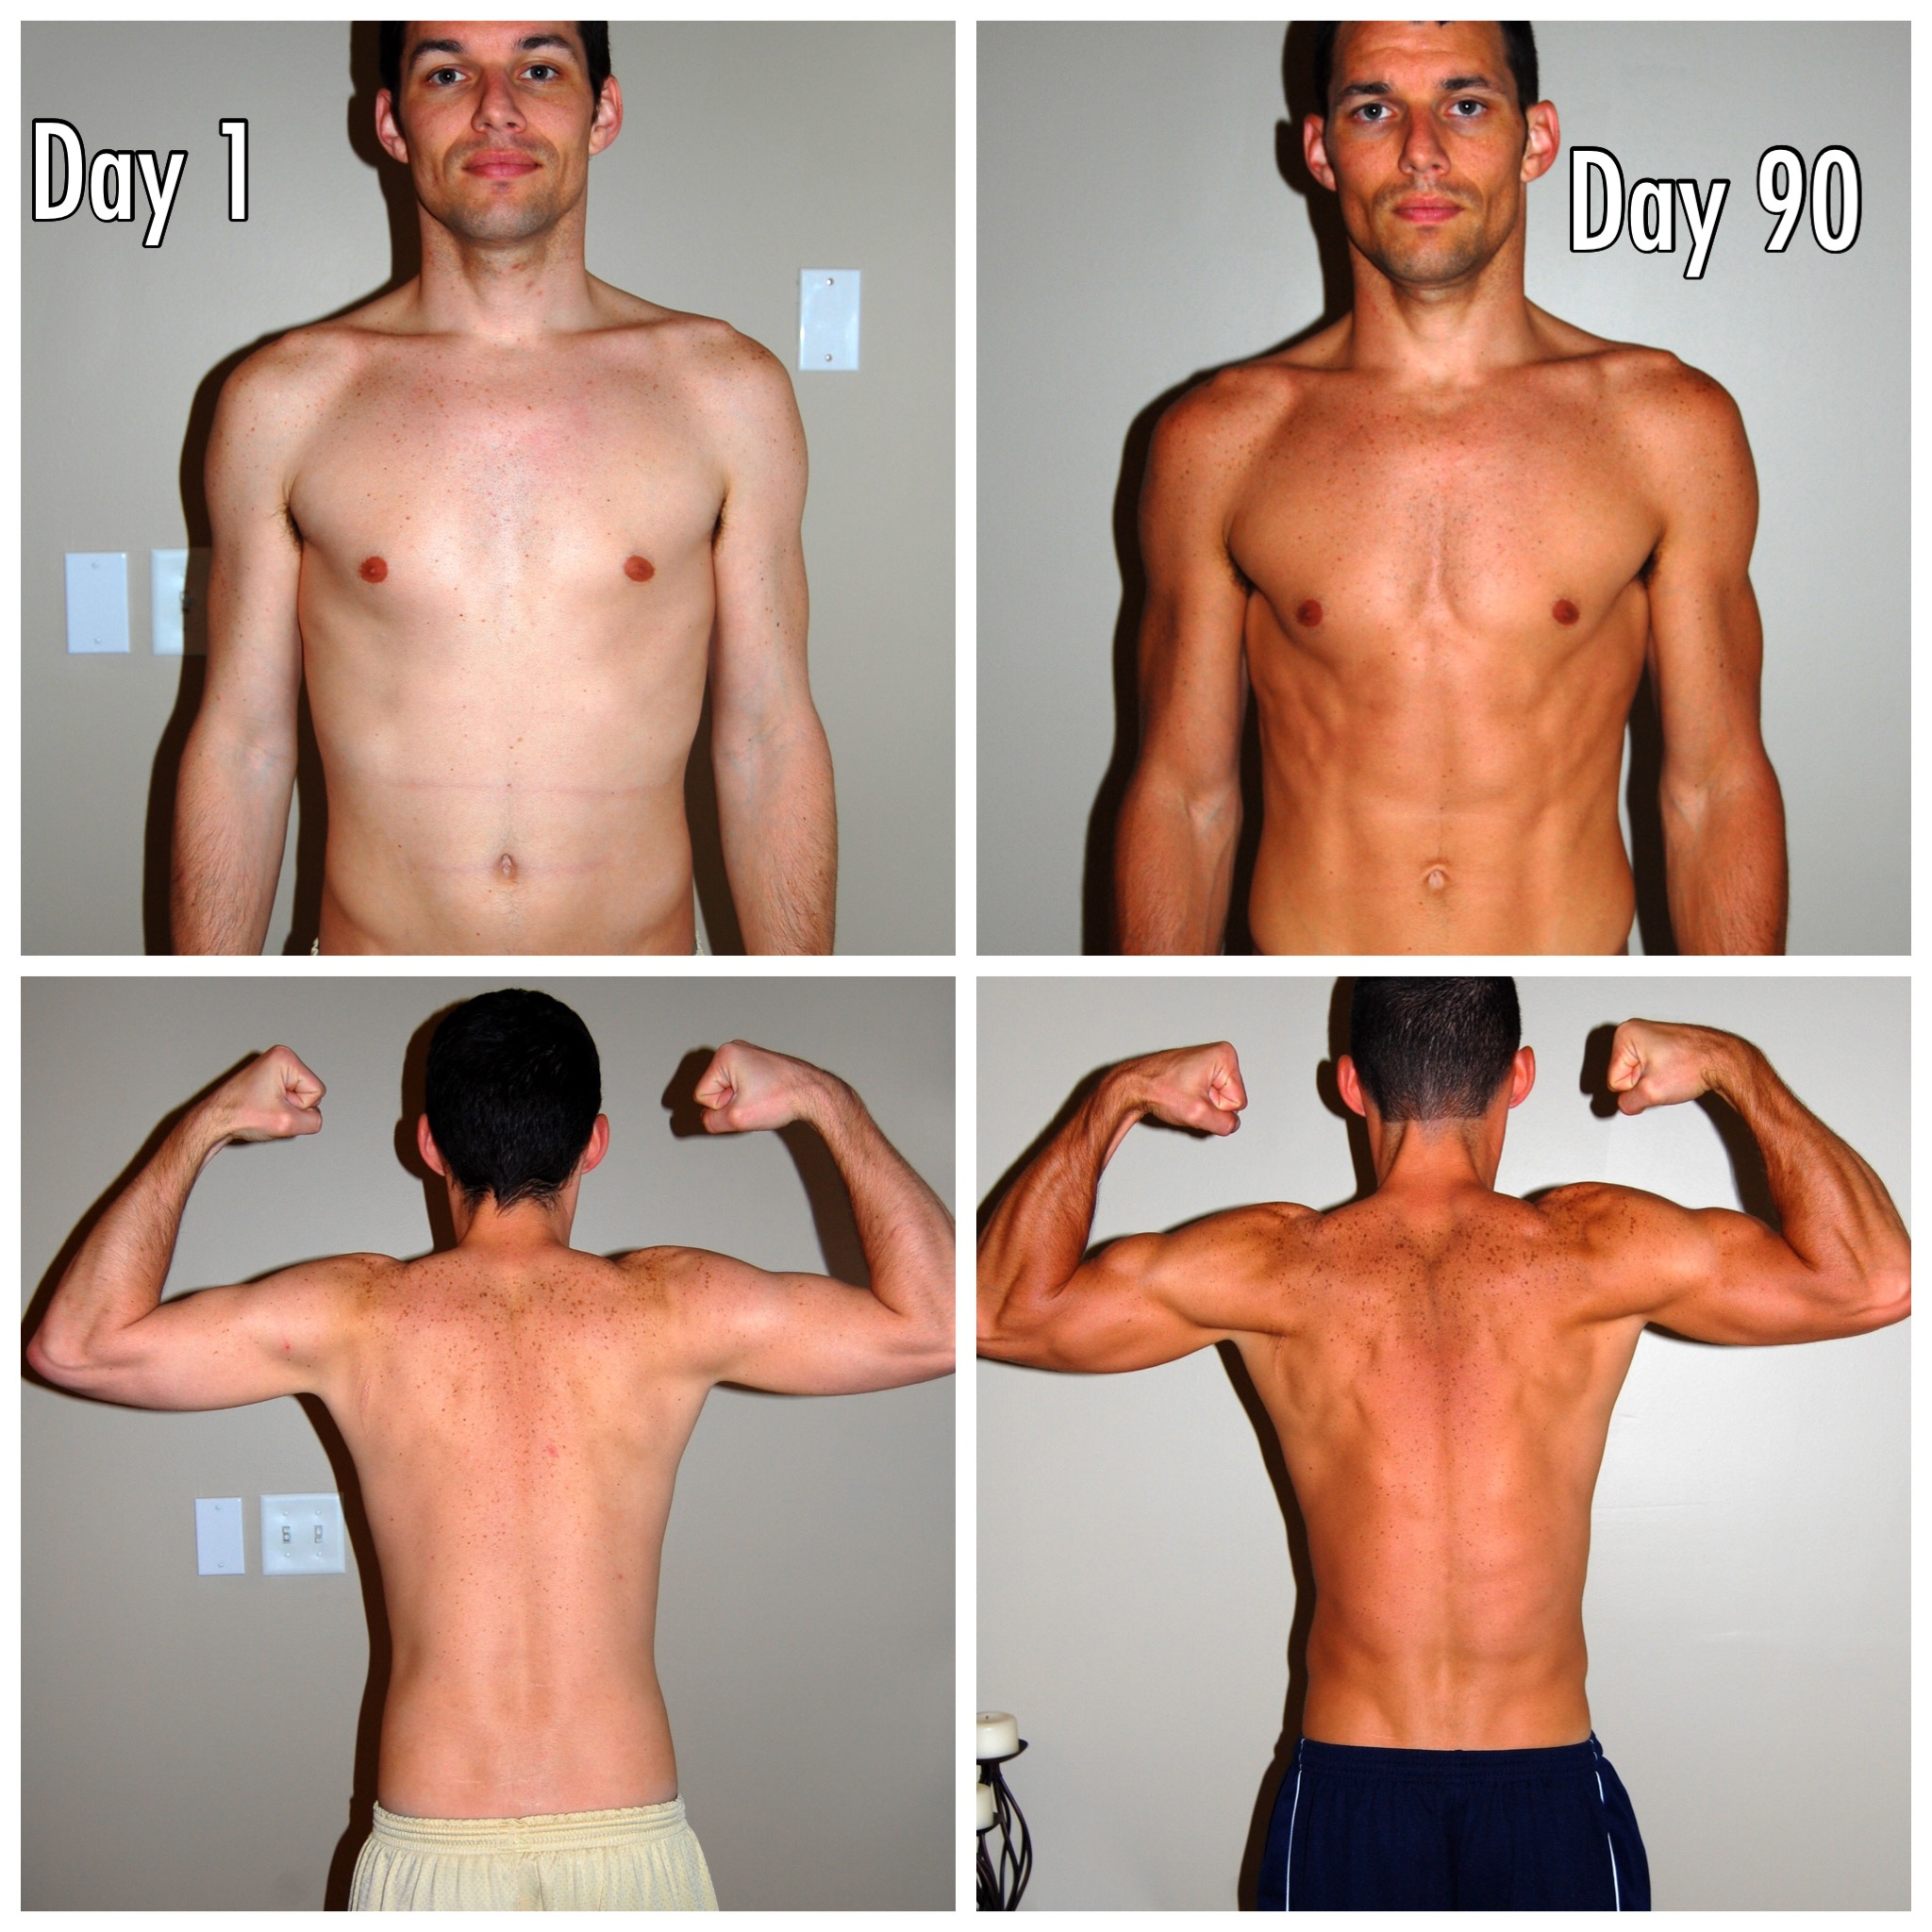 Day 1 - Day 90 - P90X Results